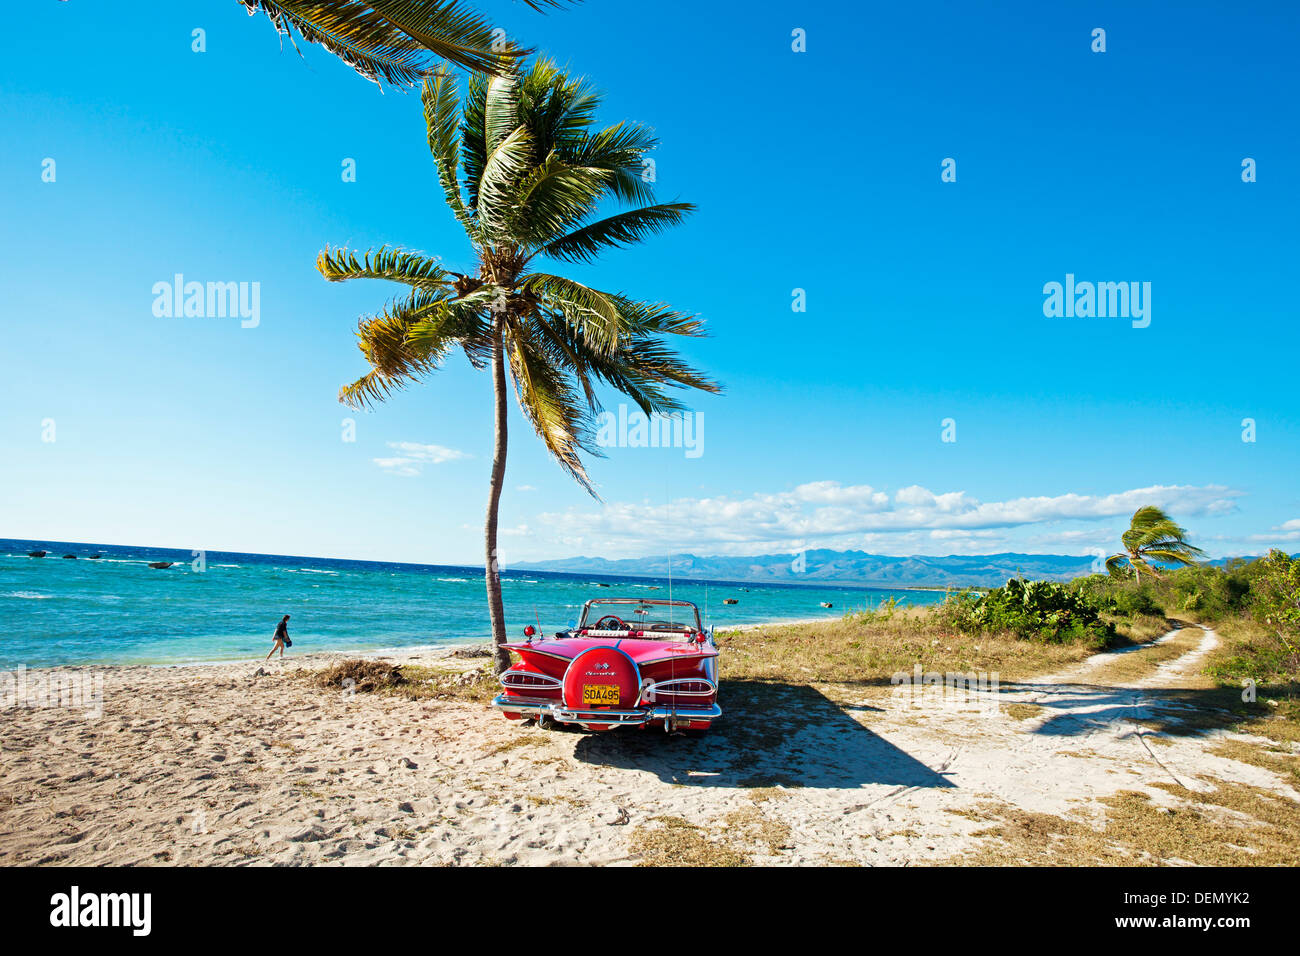 Ancon Beach Classic Car Trinidad City Sancti Spiritus Province Cuba